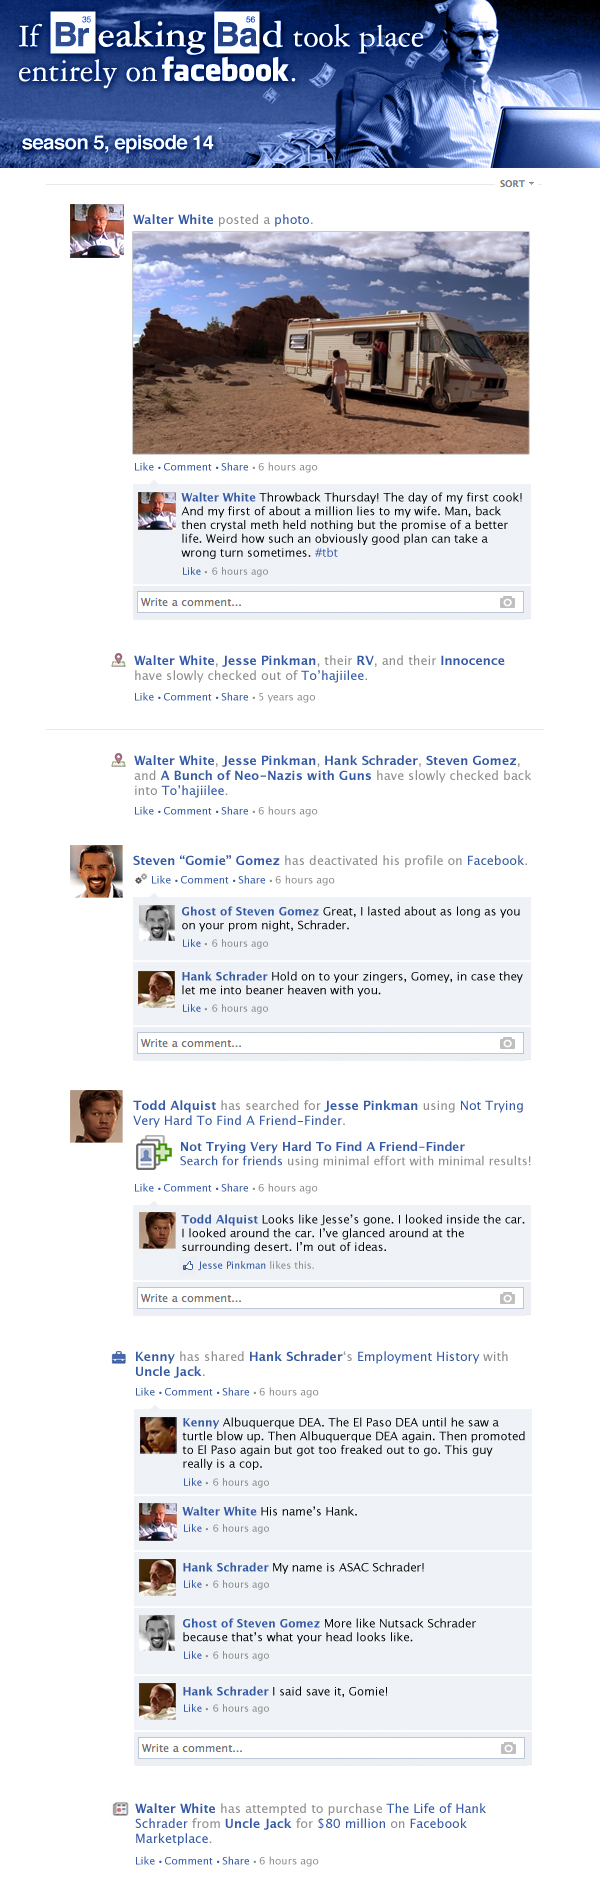 If Breaking Bad took place entirely on Facebook - Season 5, Episode 14.